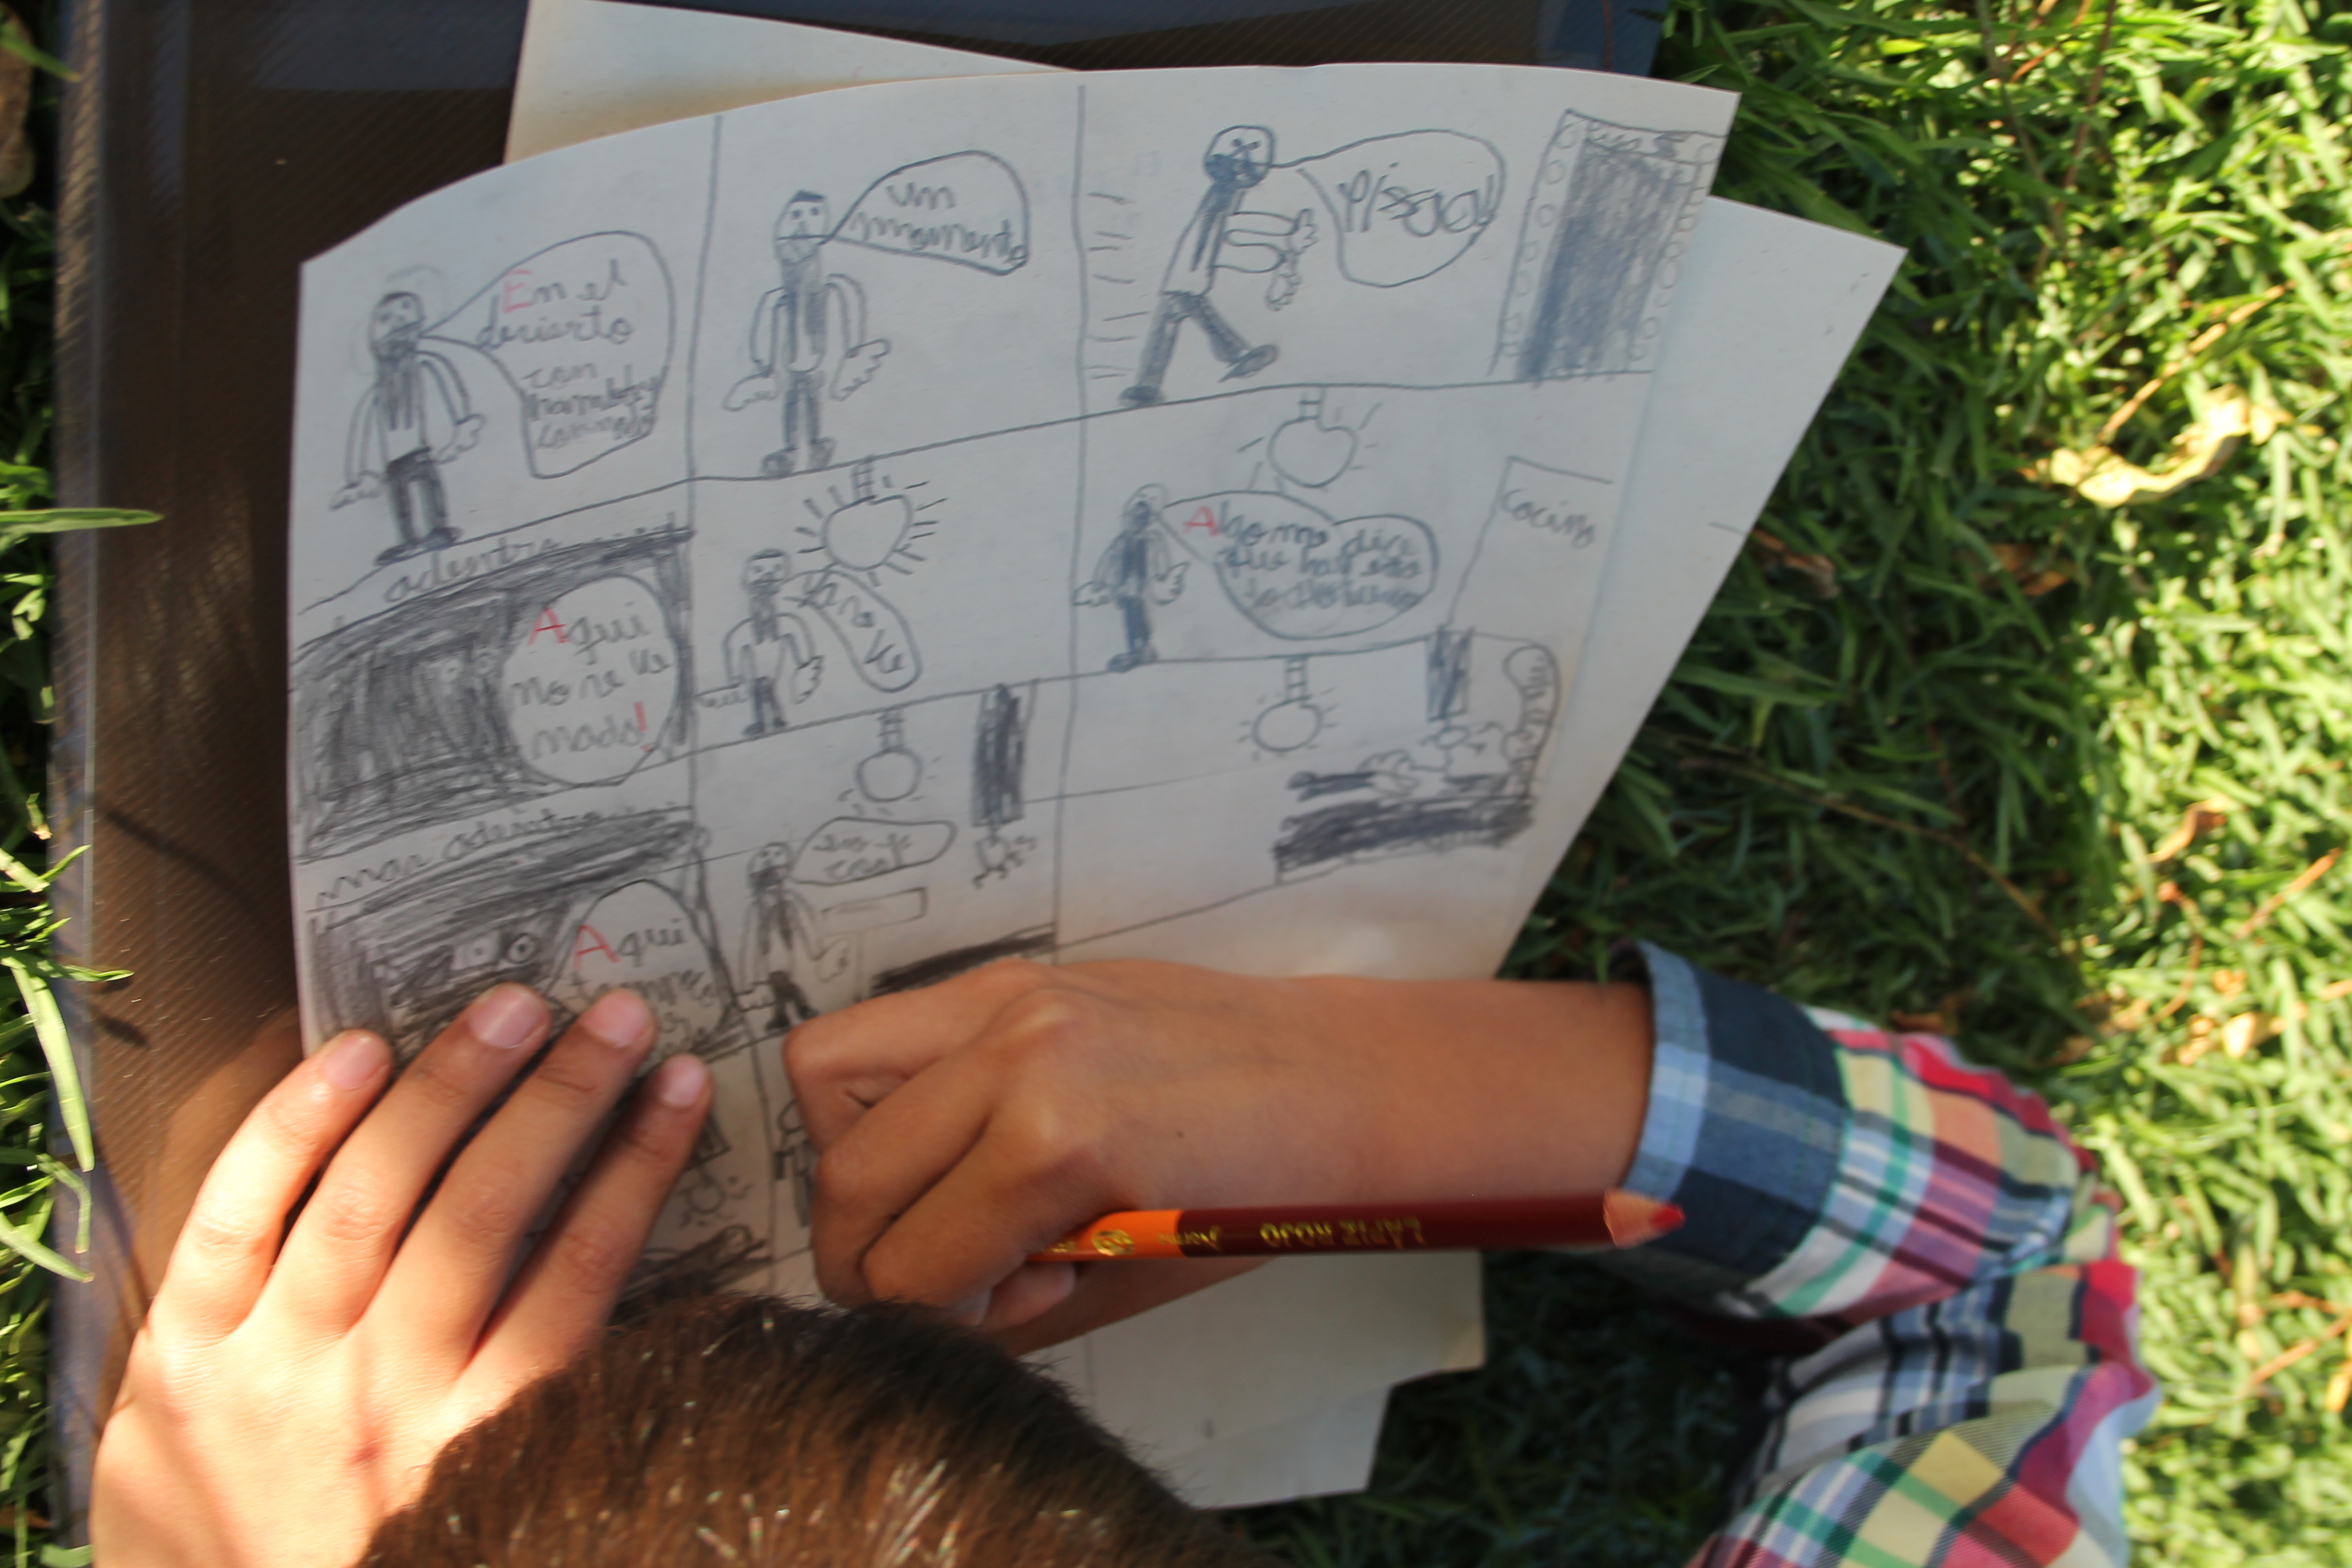 One of the participants drawing a story board